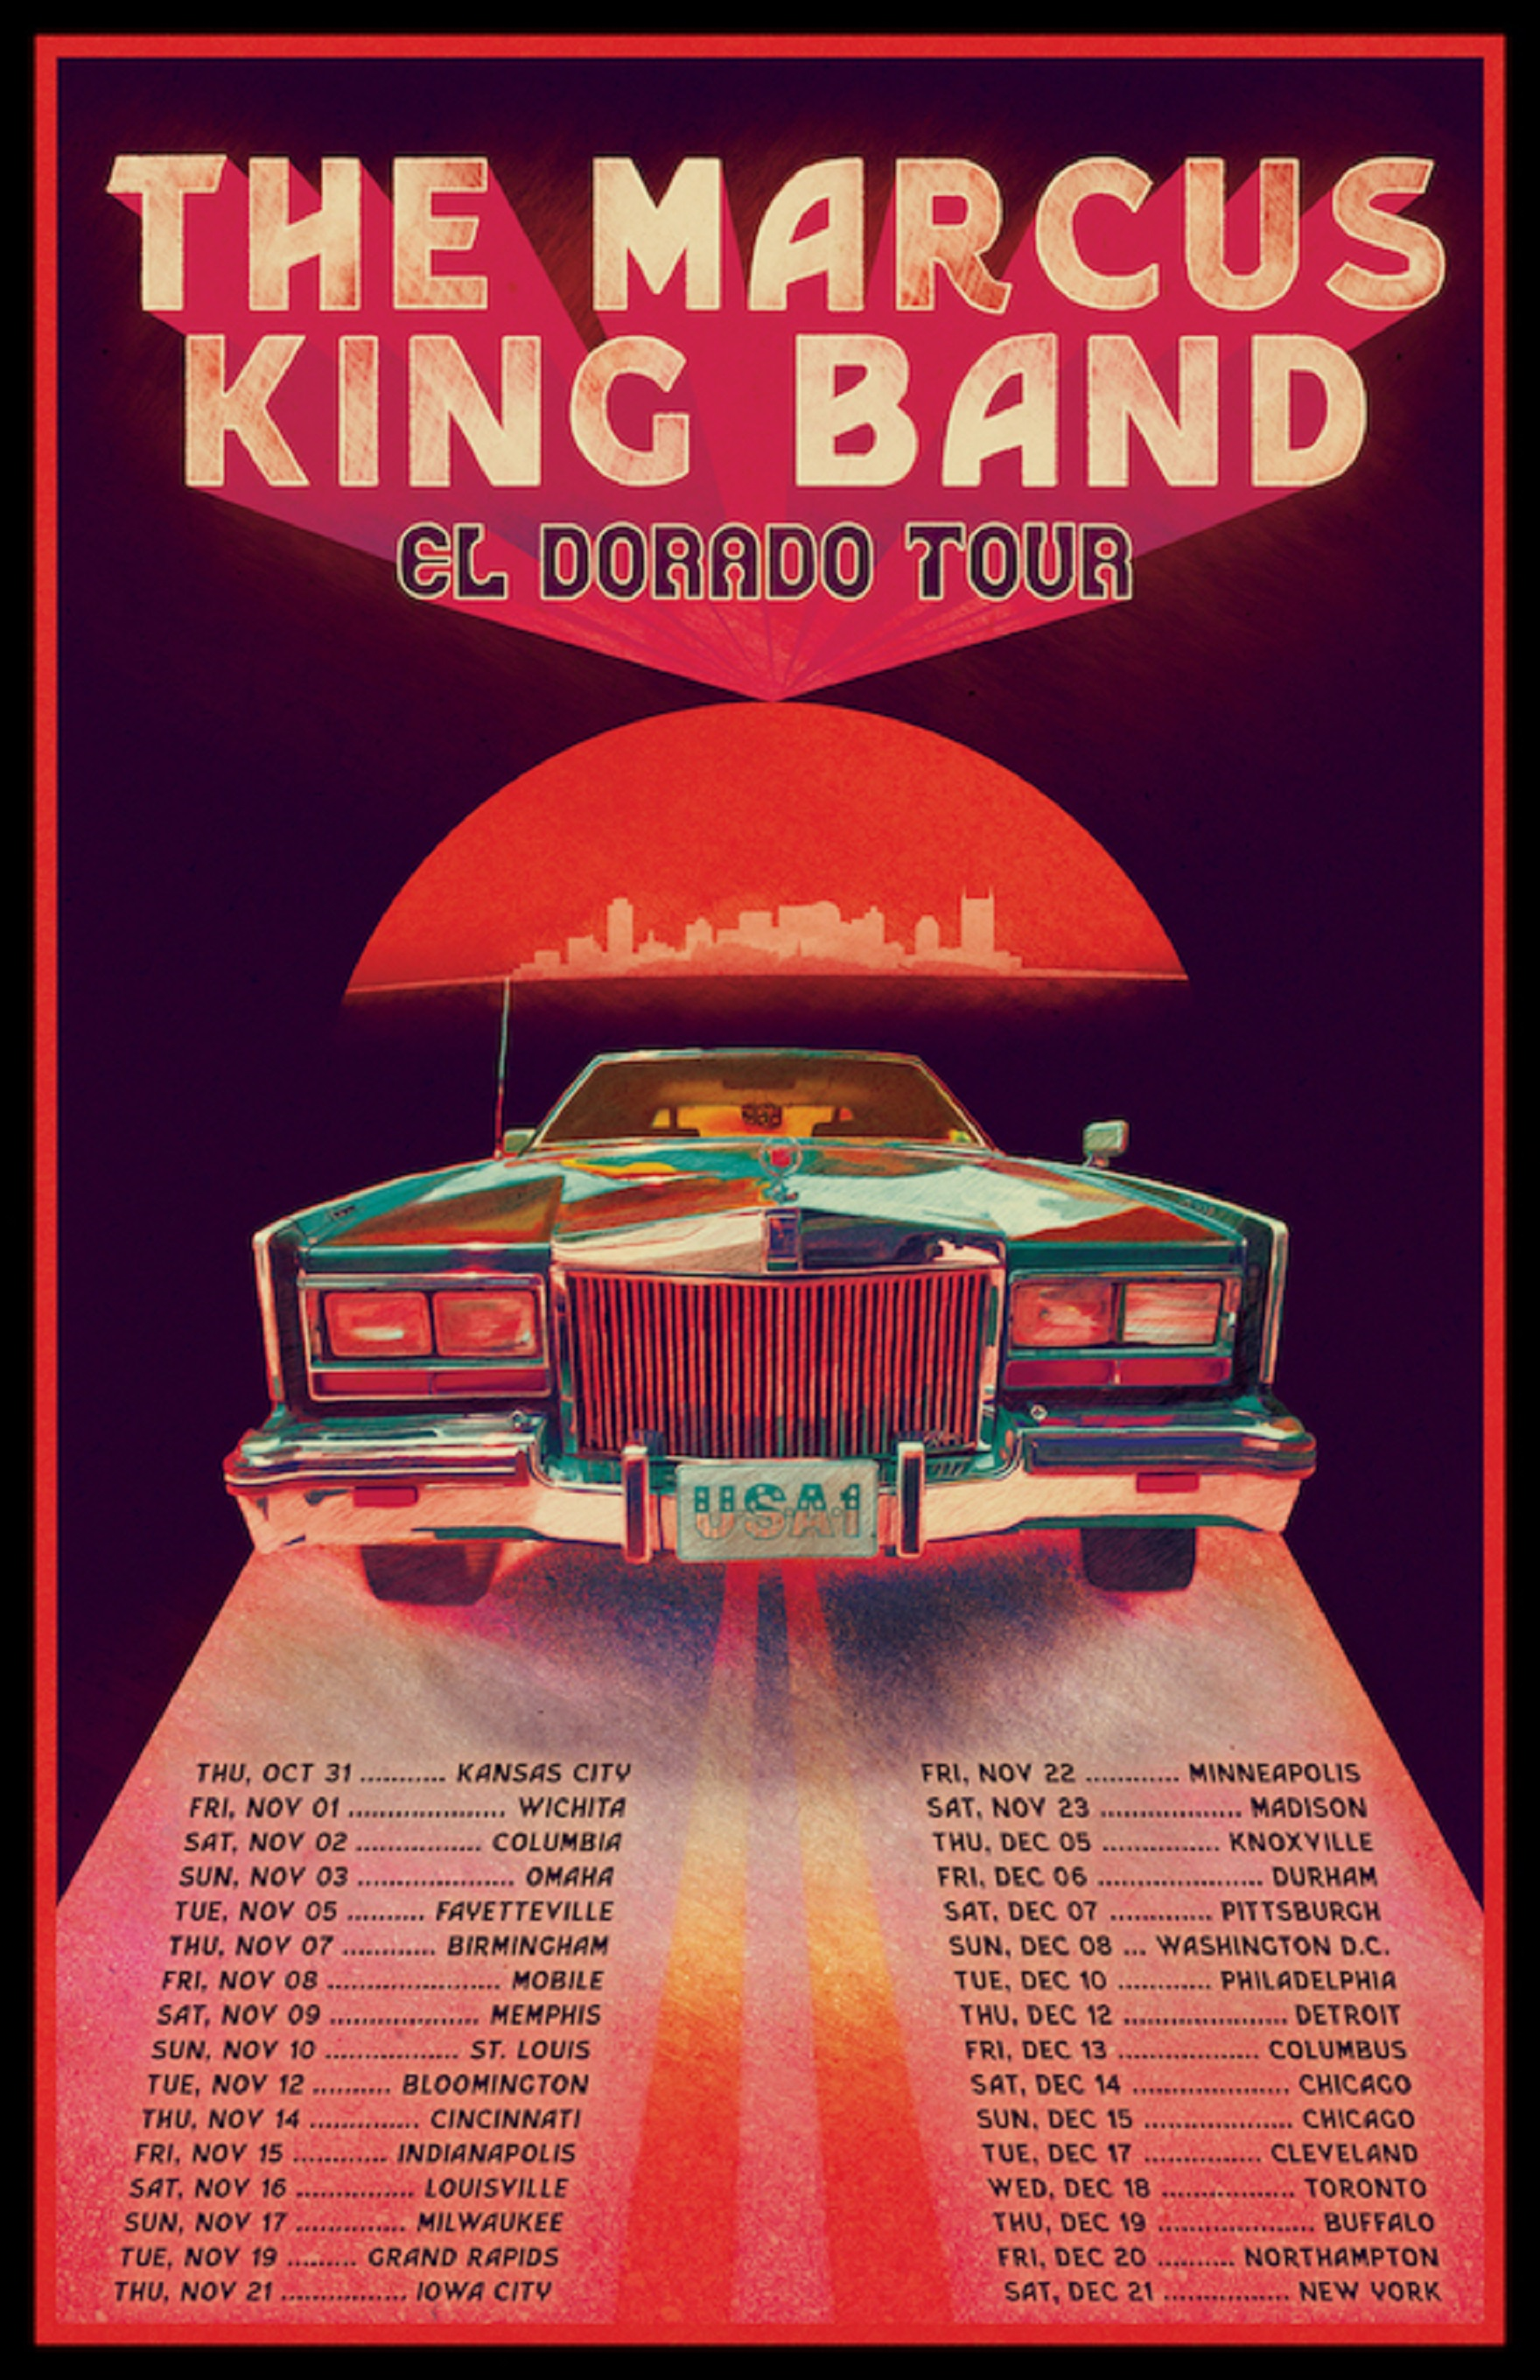 THE MARCUS KING BAND ANNOUNCE  32 DATE WINTER USA EL DORADO TOUR